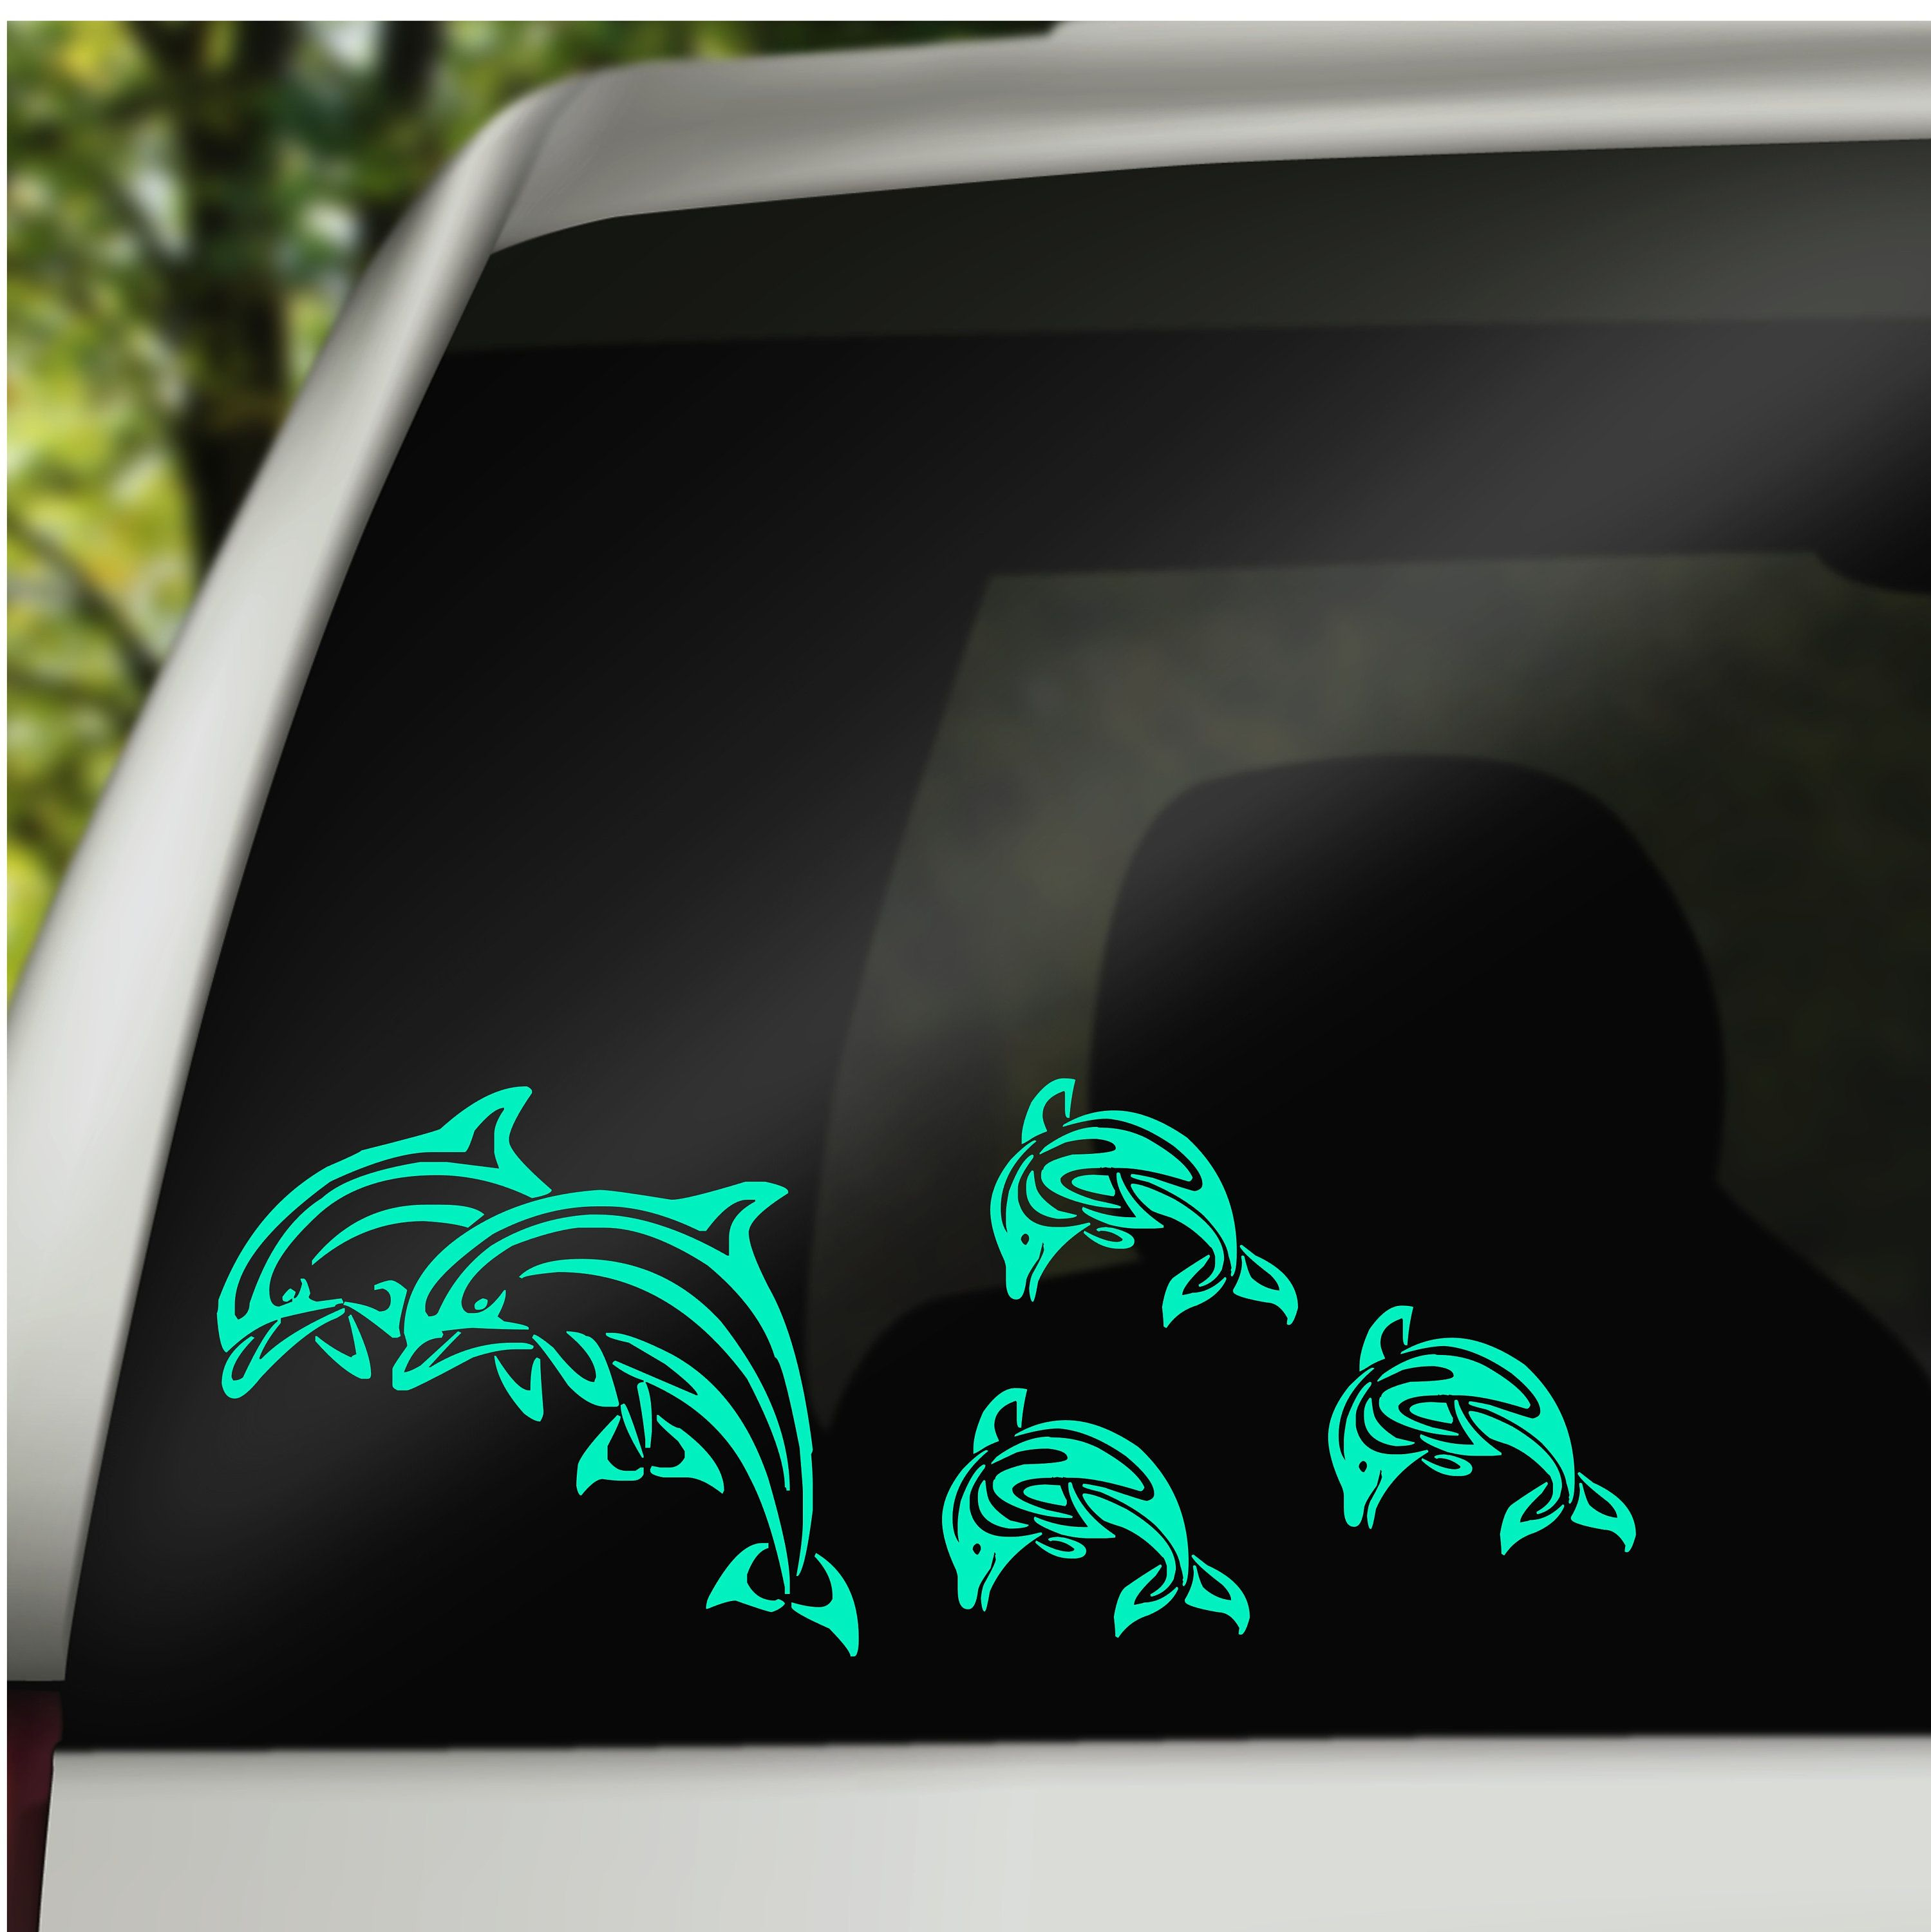 Dolphin Family Car Window Decal Car Family Stickers Car Accessories Bumper Stickers Win Car Sticker Design Family Car Stickers Personalized Car Accessories [ jpg ]